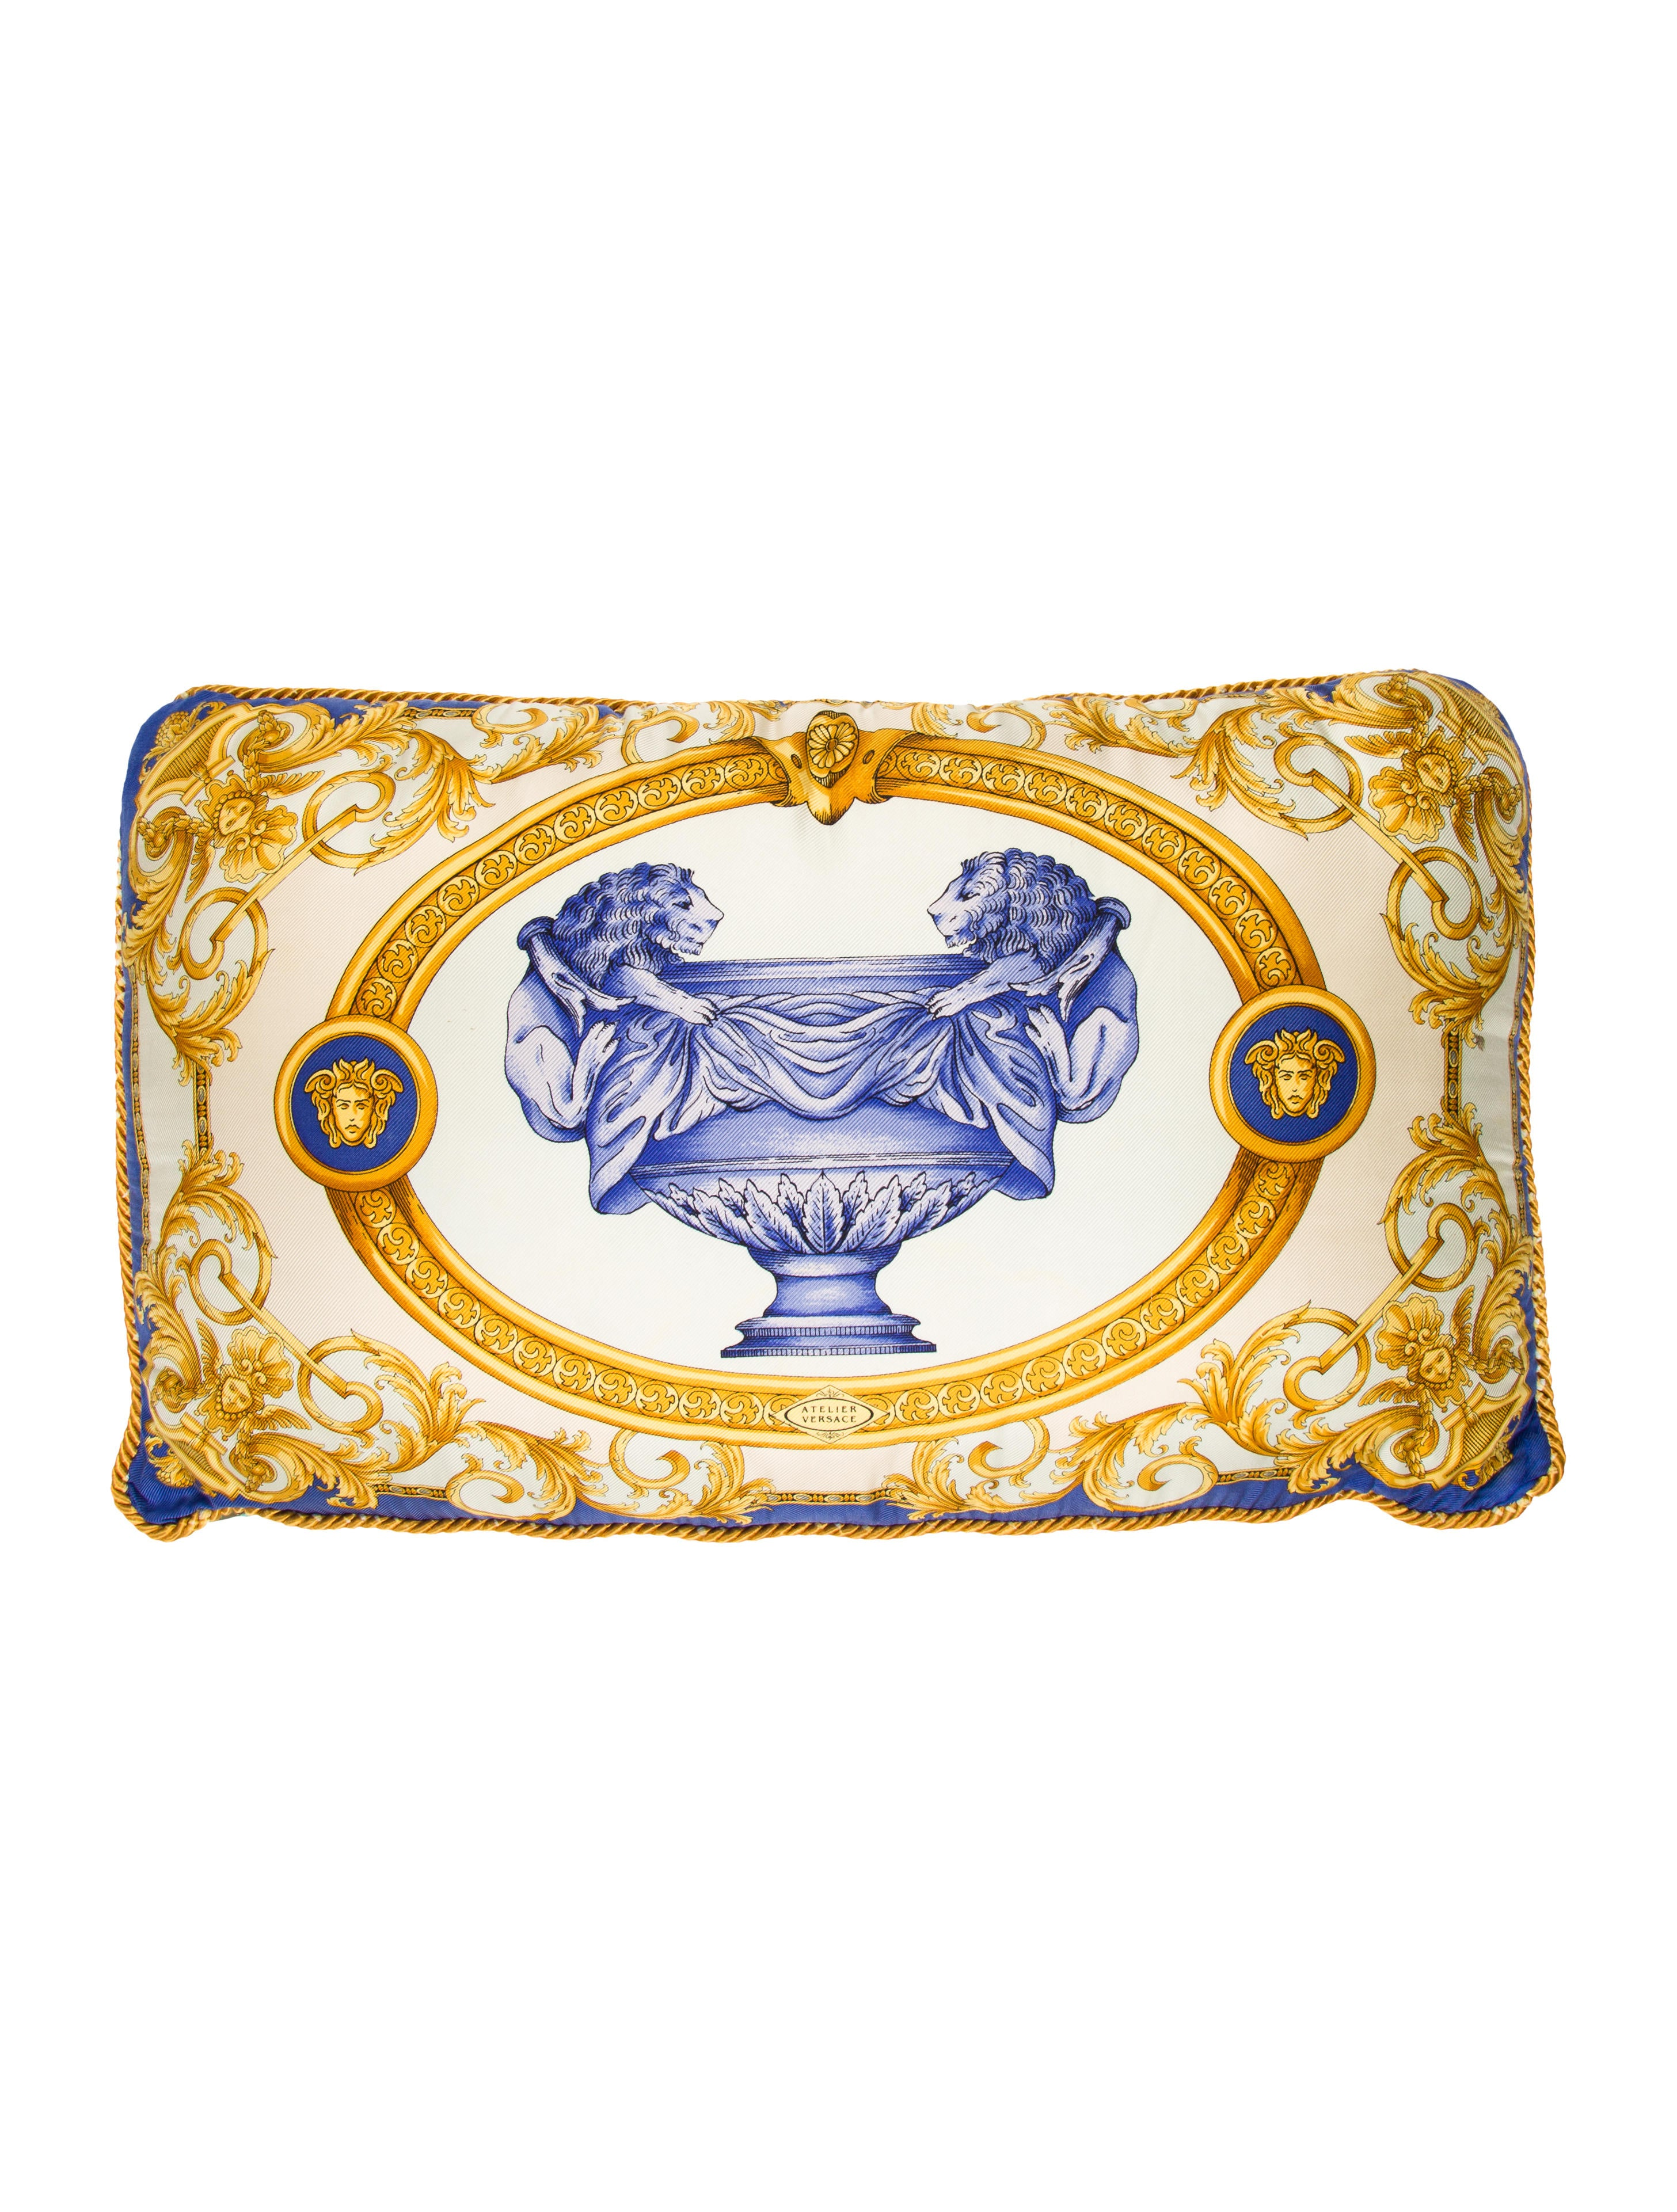 Versace Vintage Throw Pillow - Pillows And Throws - VES29045 The RealReal